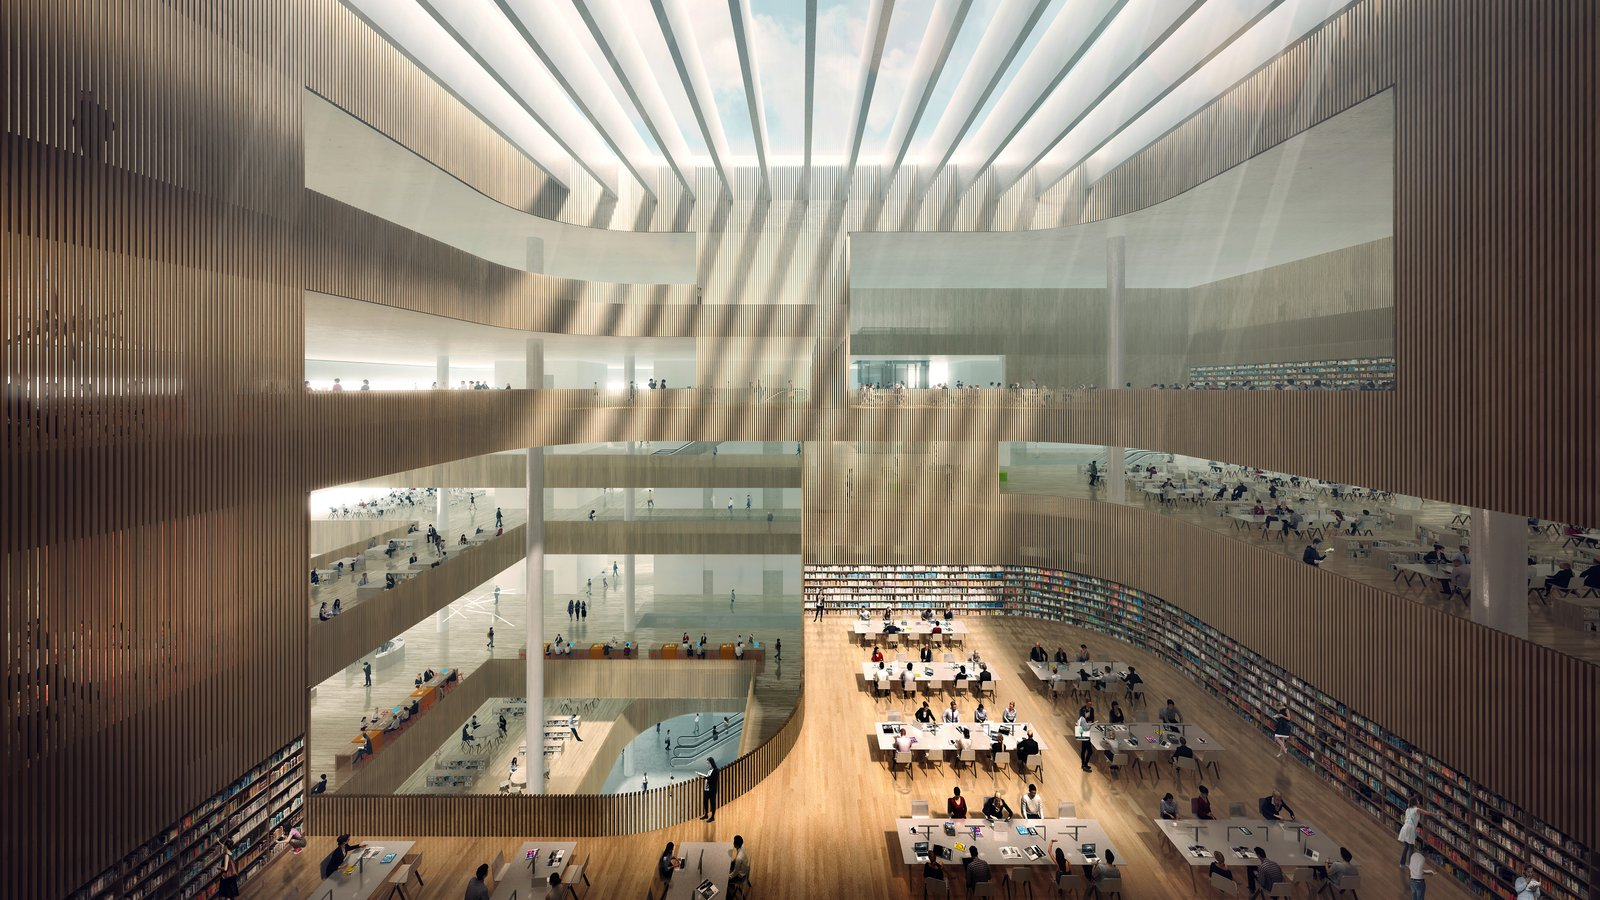 Photo 3 of 8 in Schmidt Hammer Lassen Architects' Winning Design For the Shanghai Library